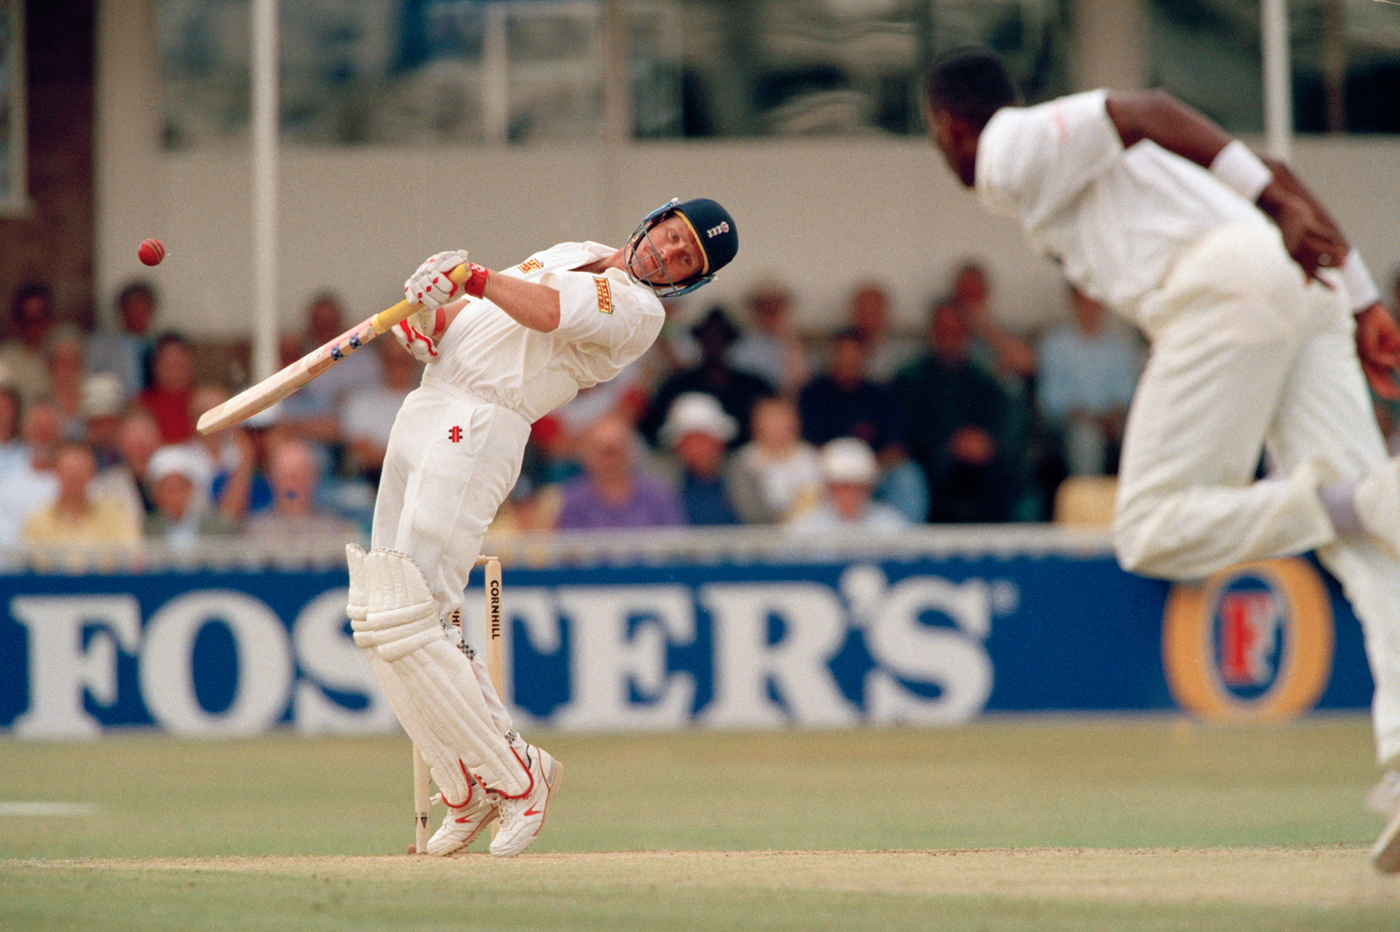 ROBIN SMITH ON HIS JOURNEY FROM THE BACKYARD IN SOUTH AFRICA TO ENGLAND TEST CRICKETER